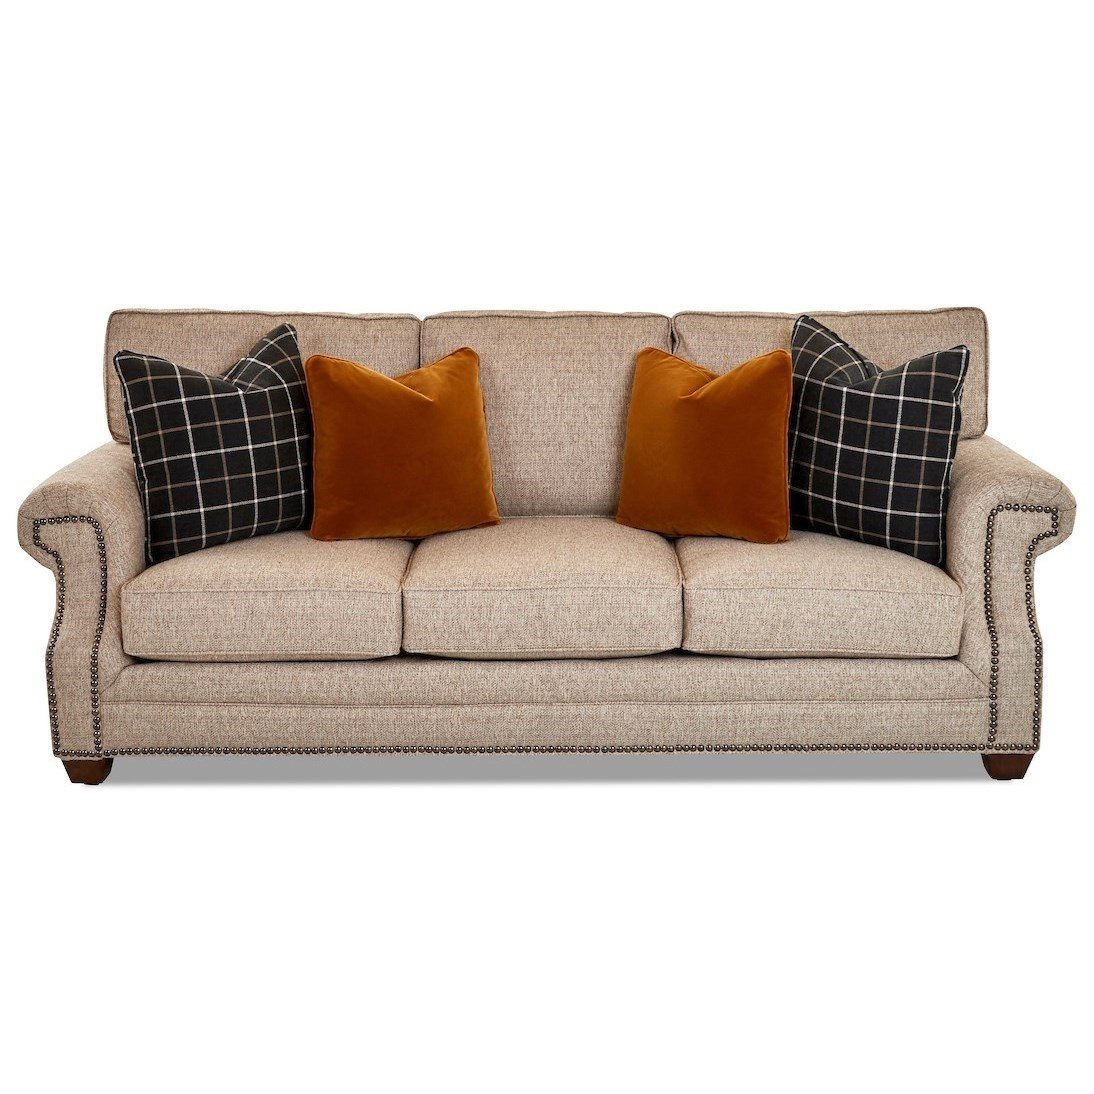 Lawrence Sofa by Klaussner at Northeast Factory Direct